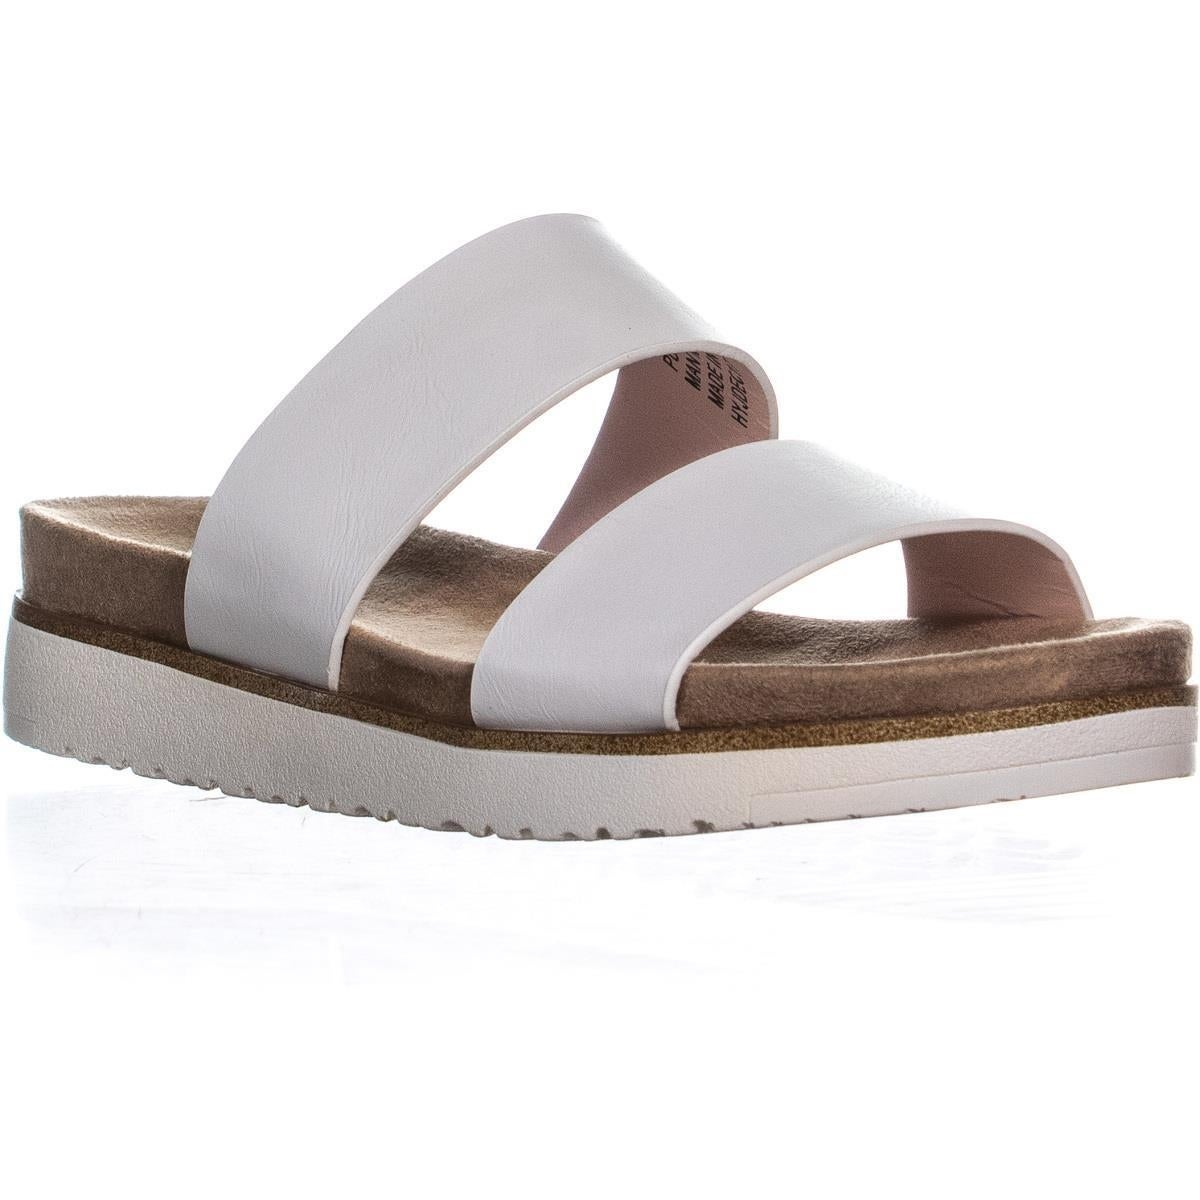 7194ed77adf Shop XOXO Dylan Flat Slide Two Strap Sandals